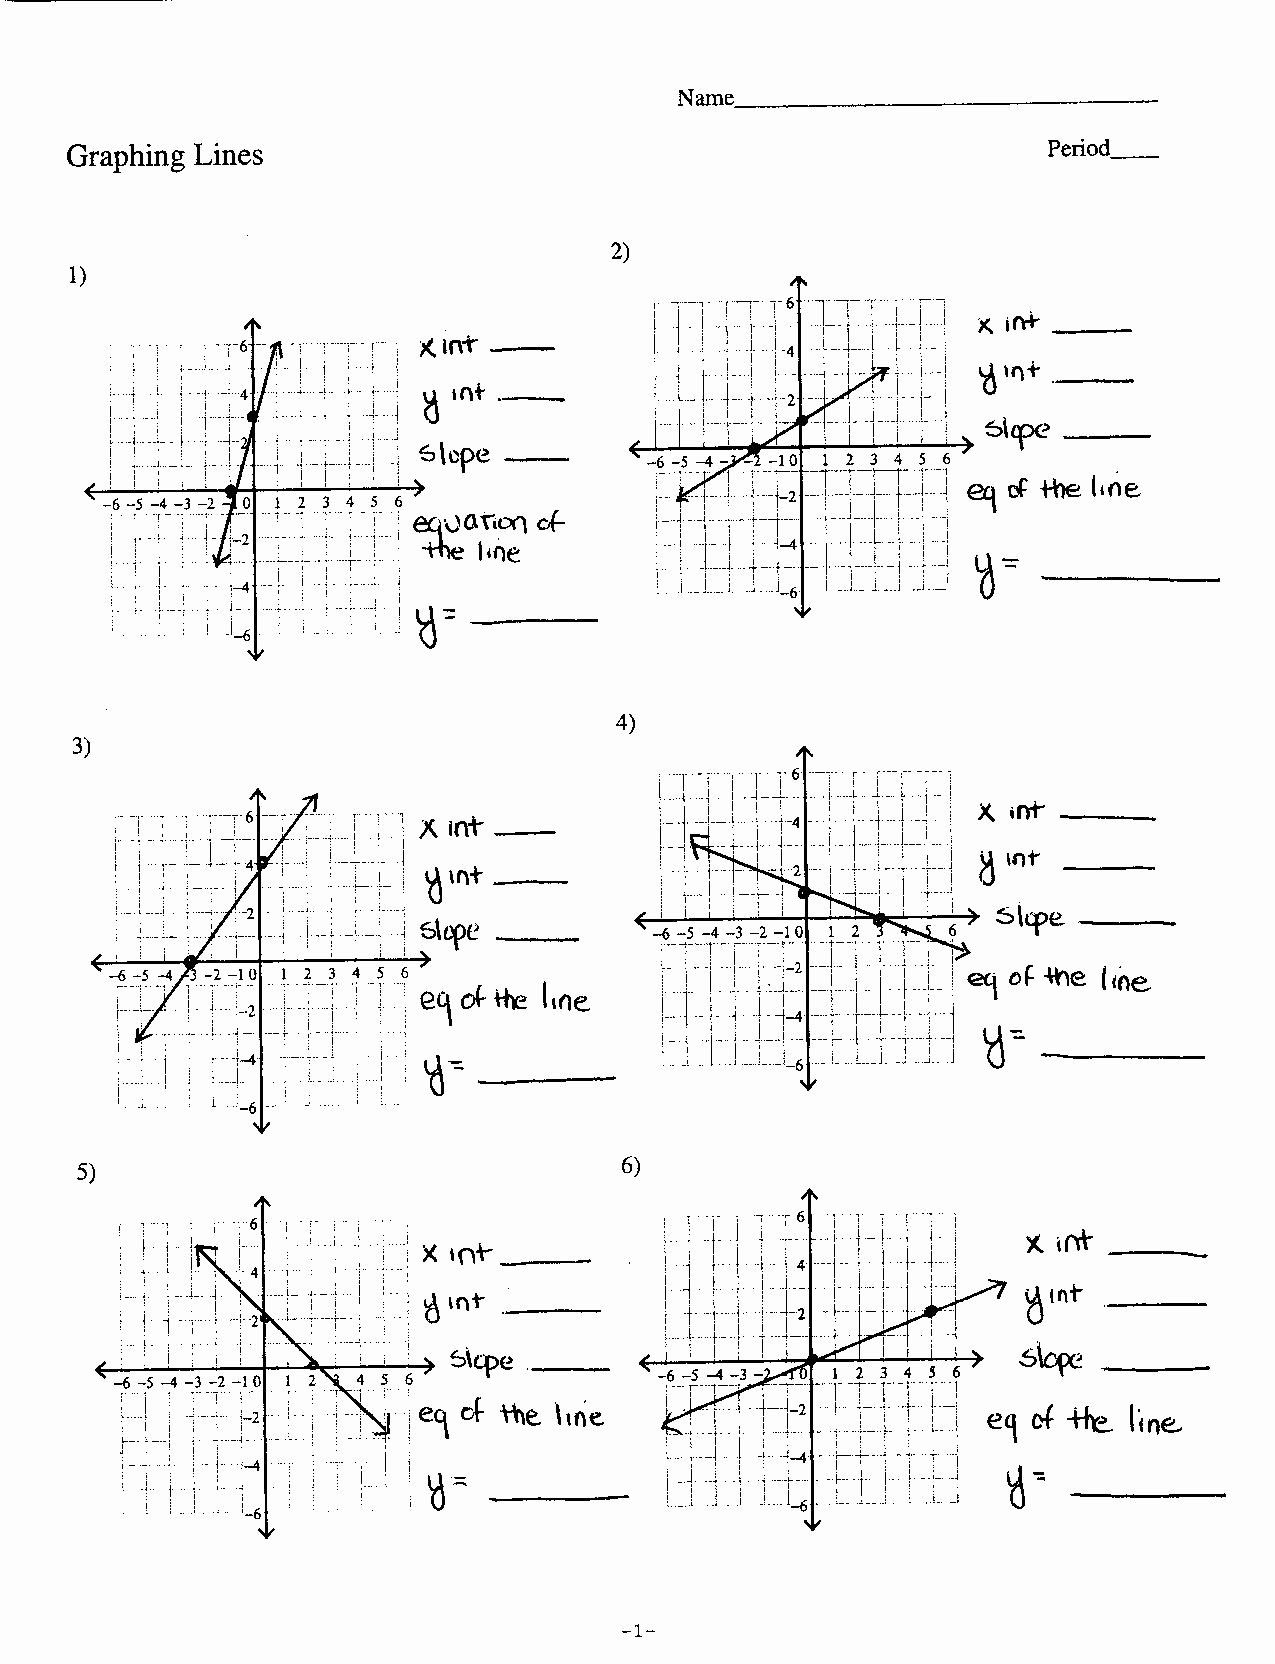 Graphing Linear Inequalities Worksheet Answers Elegant Two